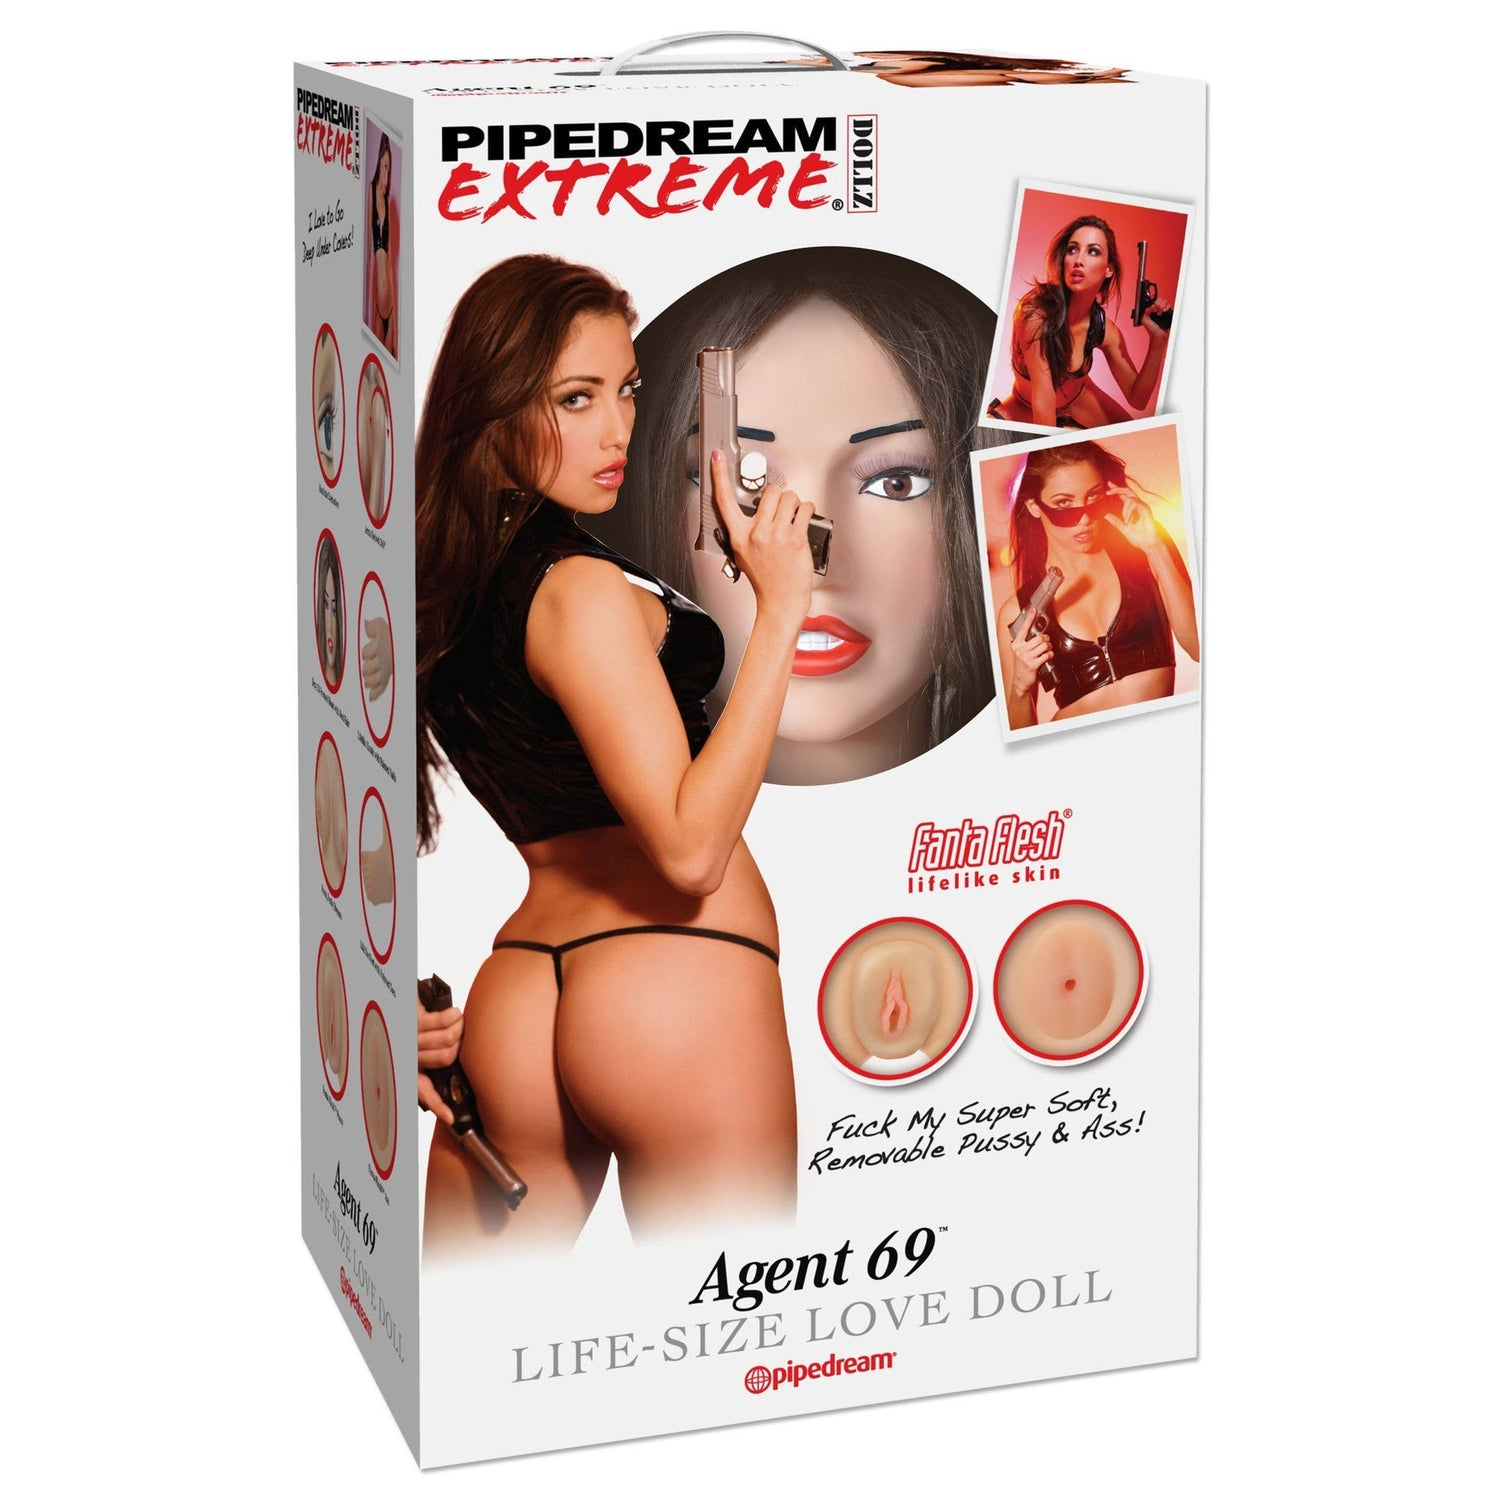 Pipedream - Extreme Dollz Agent 69 Life-Size Love Doll (Beige) | CherryAffairs Singapore